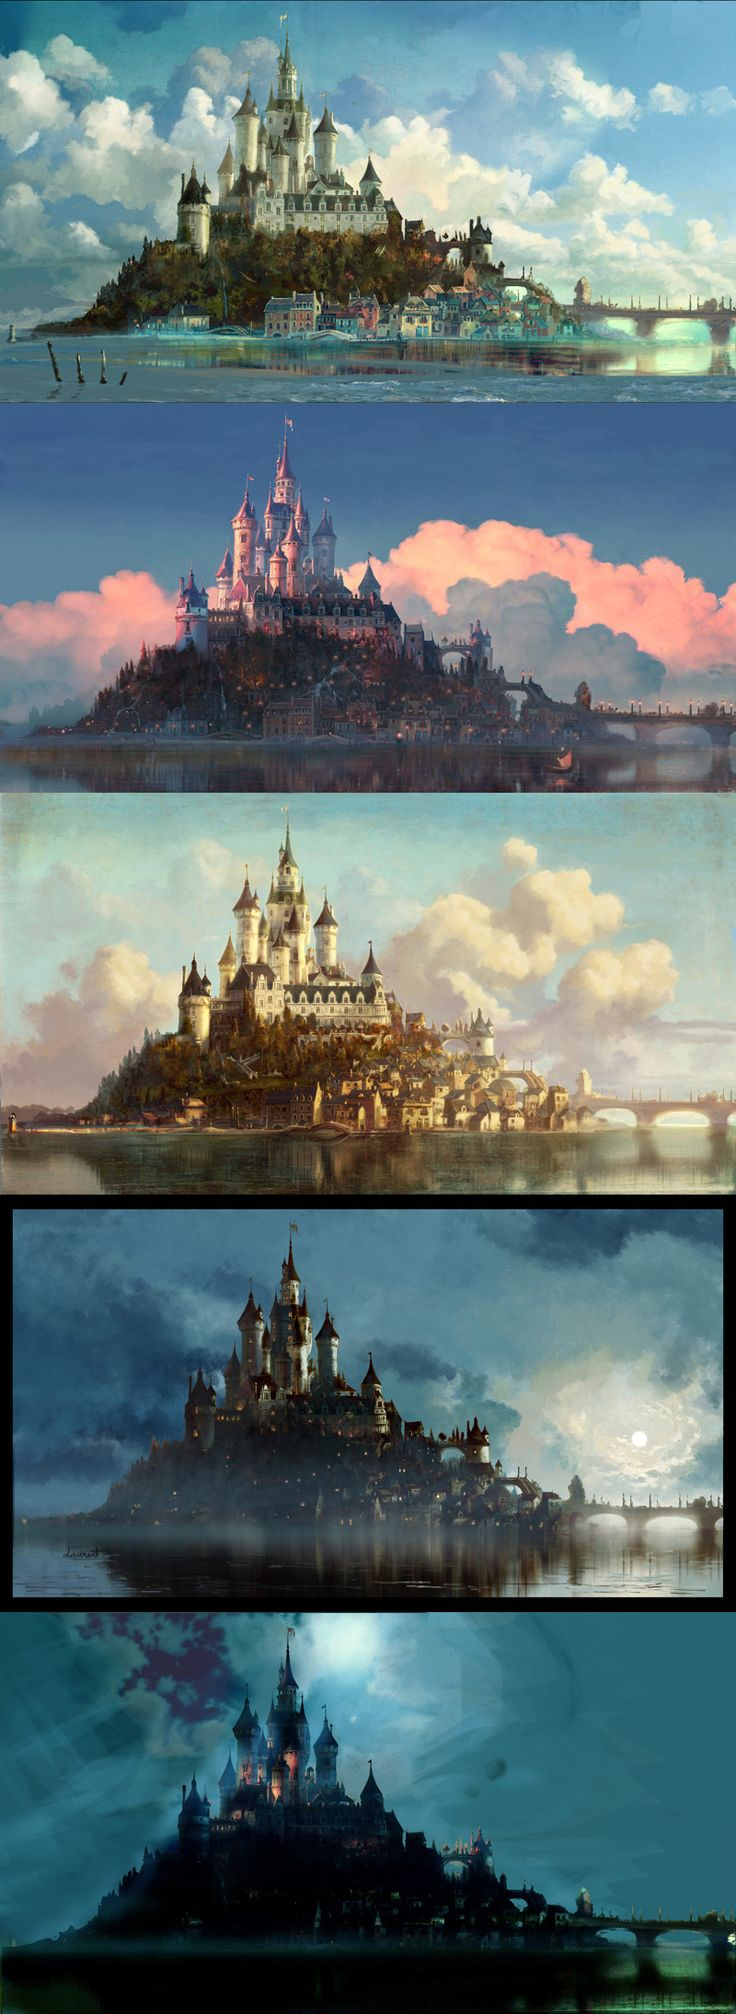 Tangled Concept Design By Laurent Benmimoun